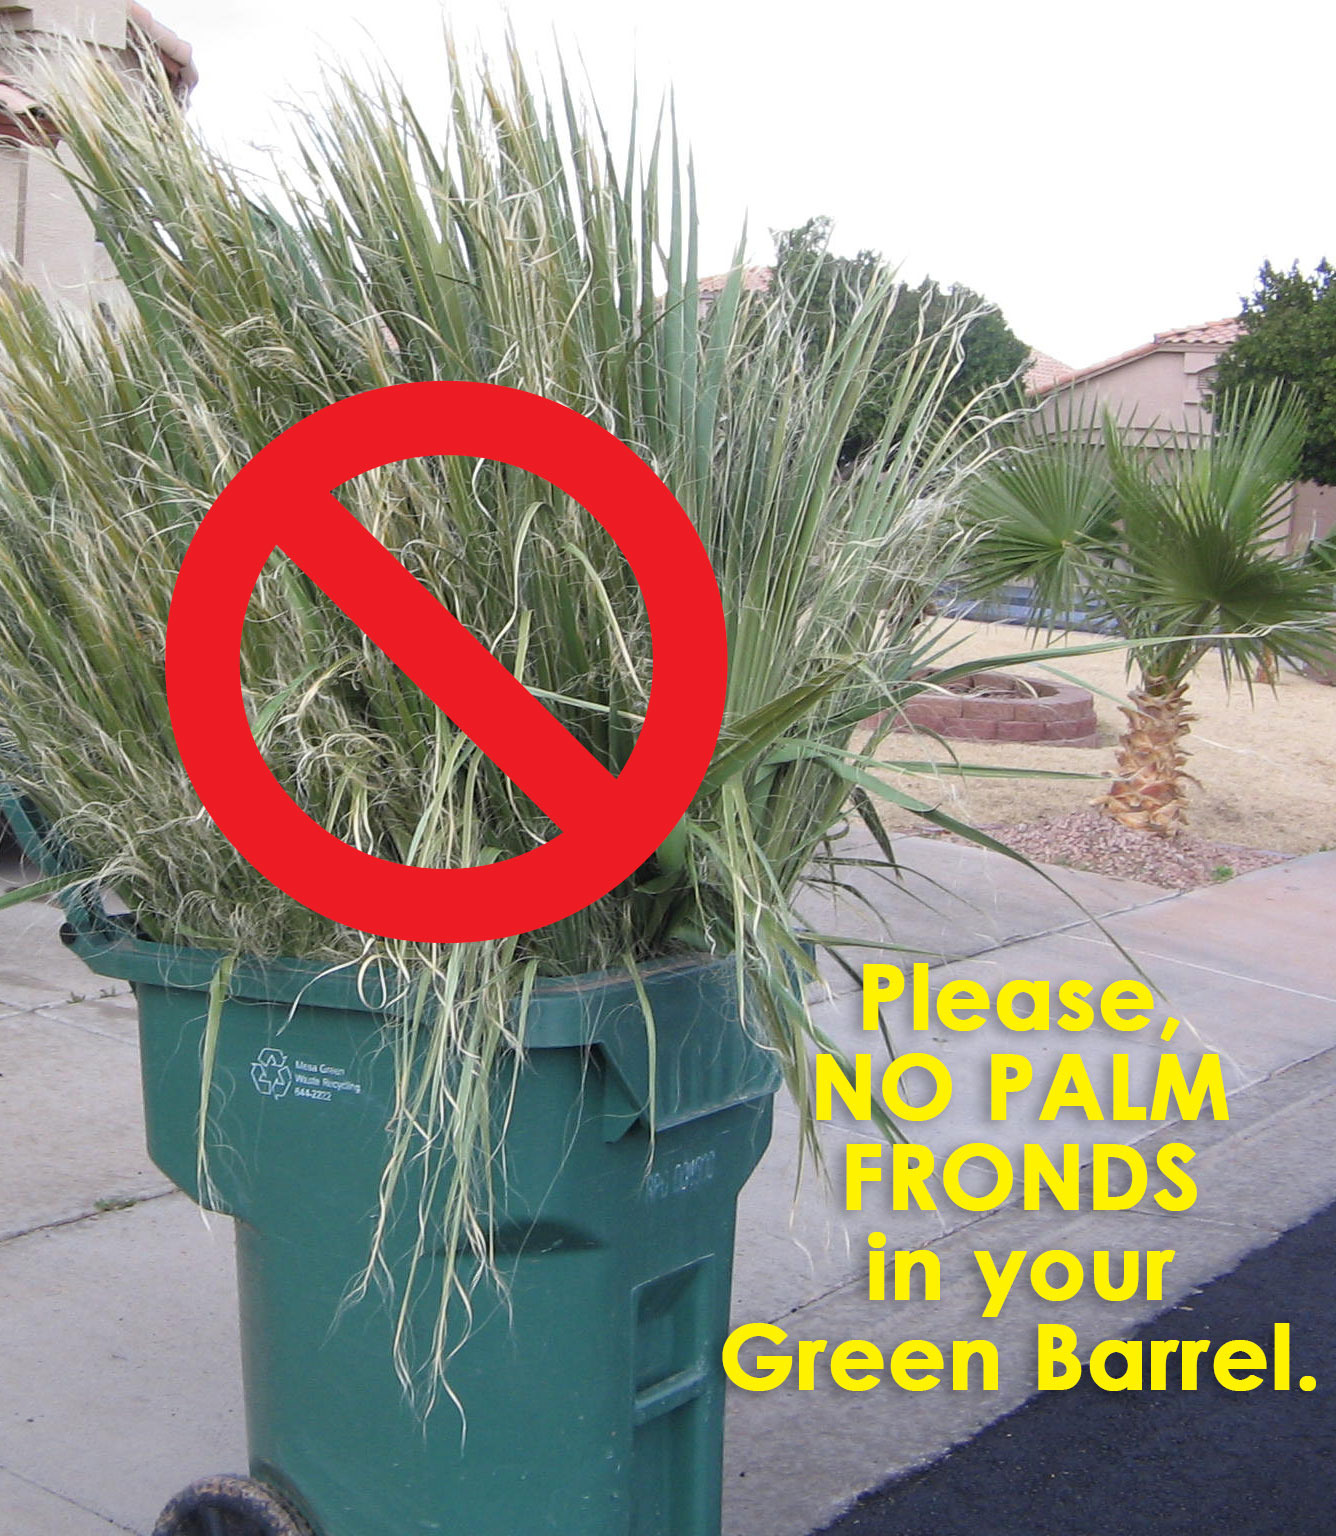 Premium Yard Waste Is An Optional Service That Provides Residents With The Convenience Of A Wheeled Container For Weekly Collection